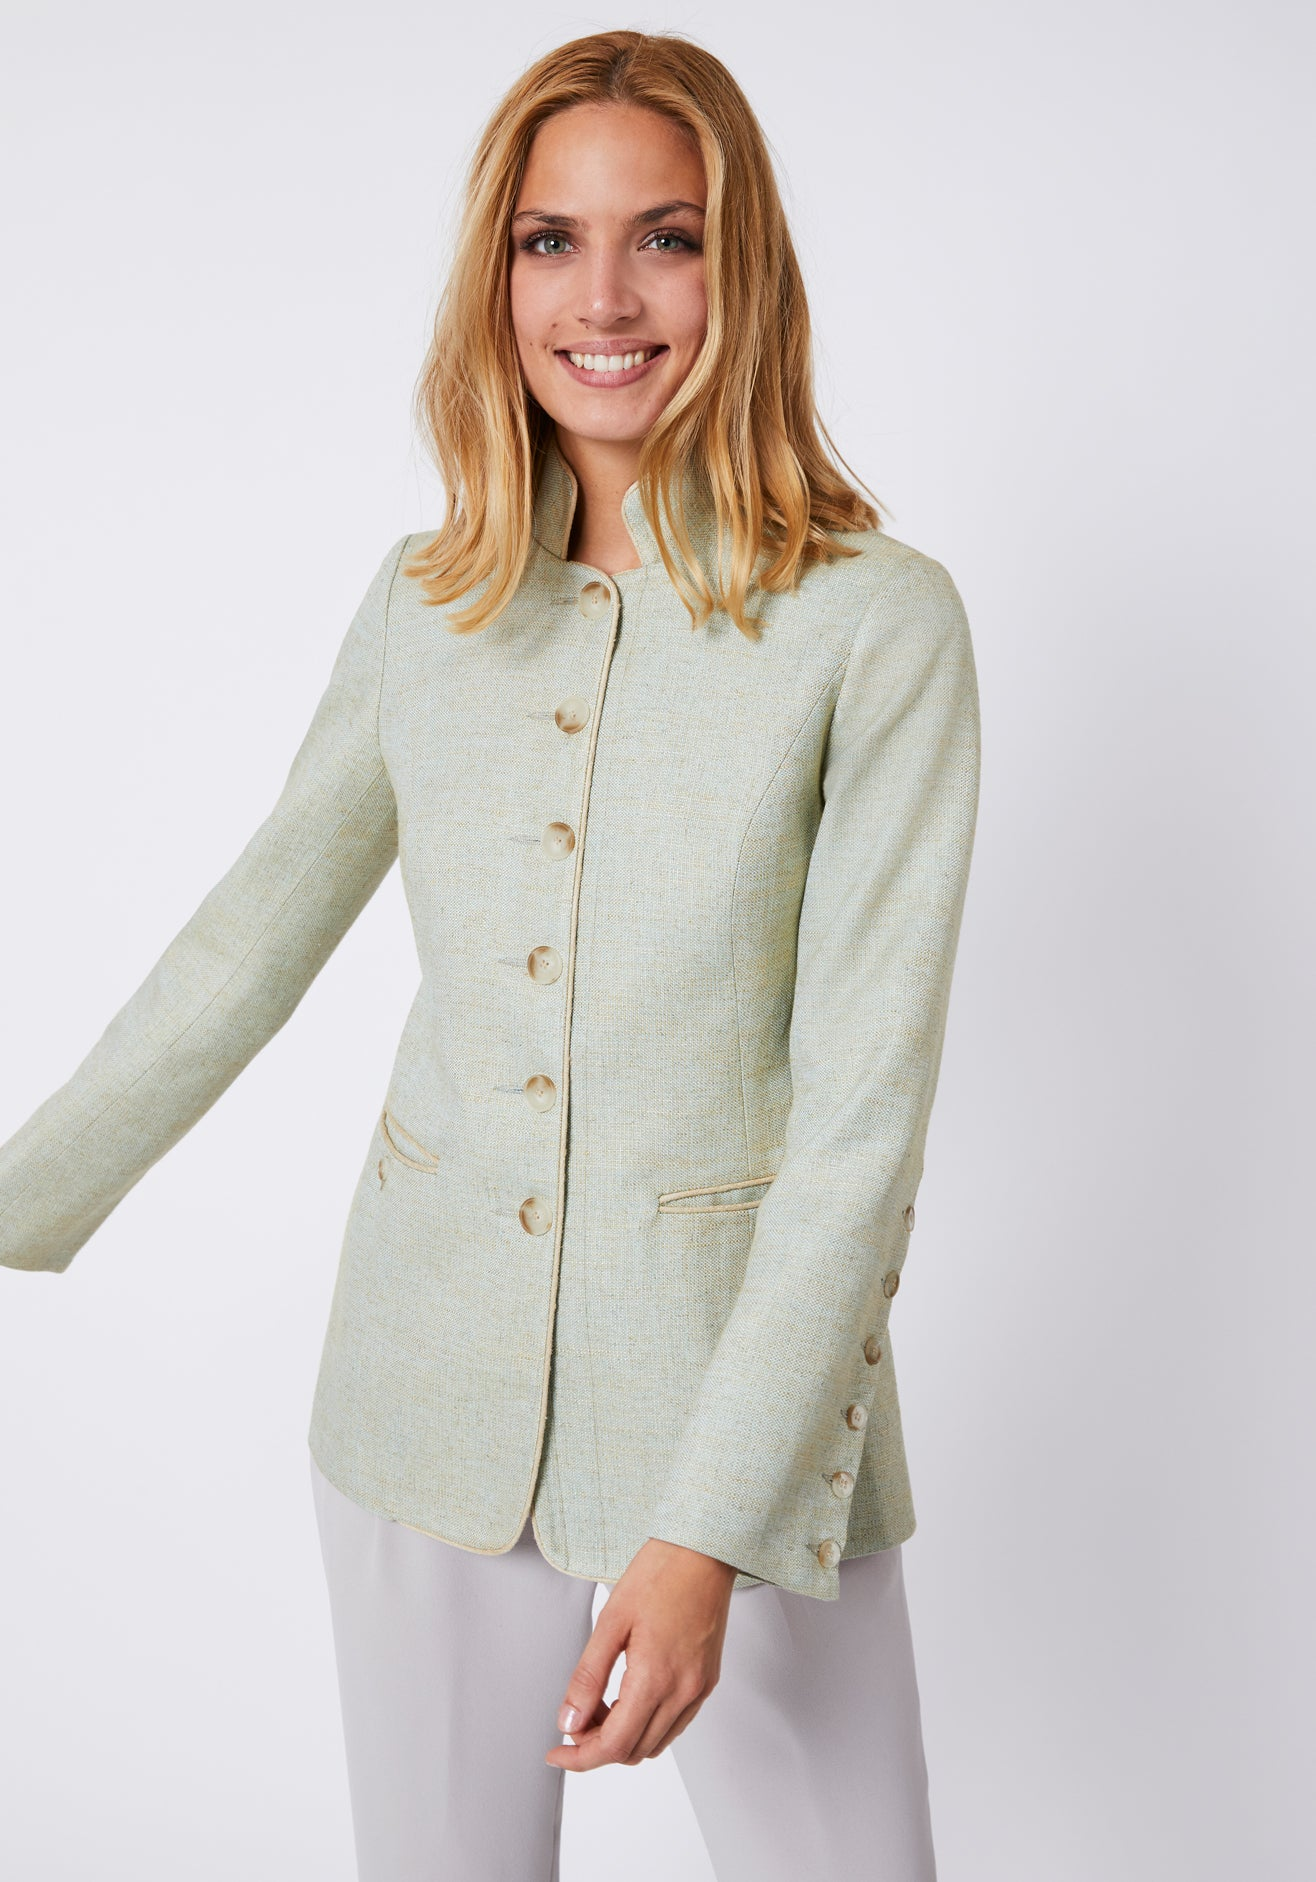 Patmos Jacket in Duck Egg